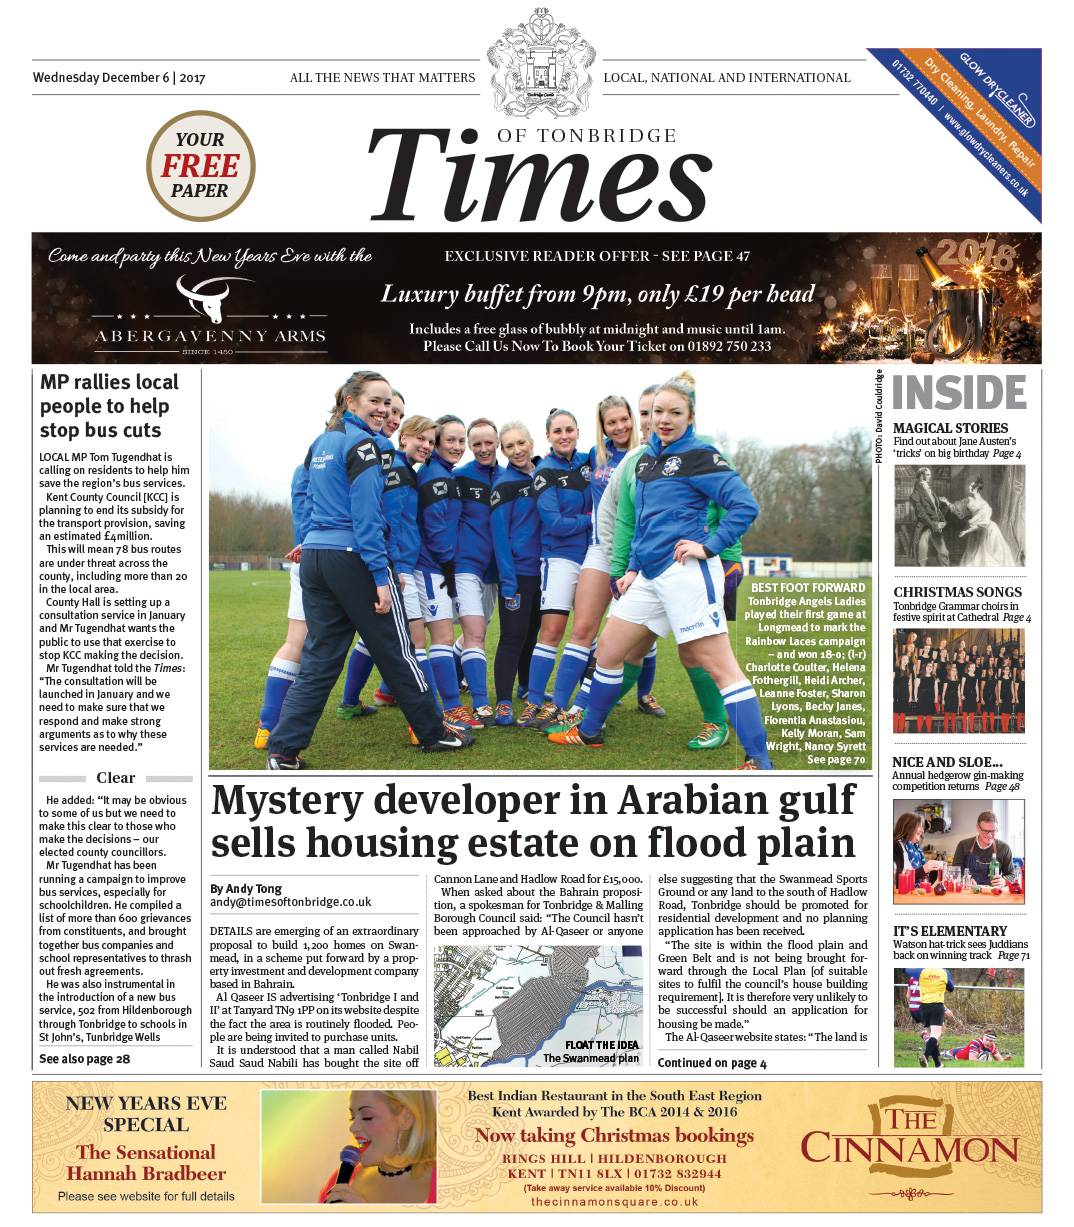 Read the Times of Tonbridge 6th December 2017